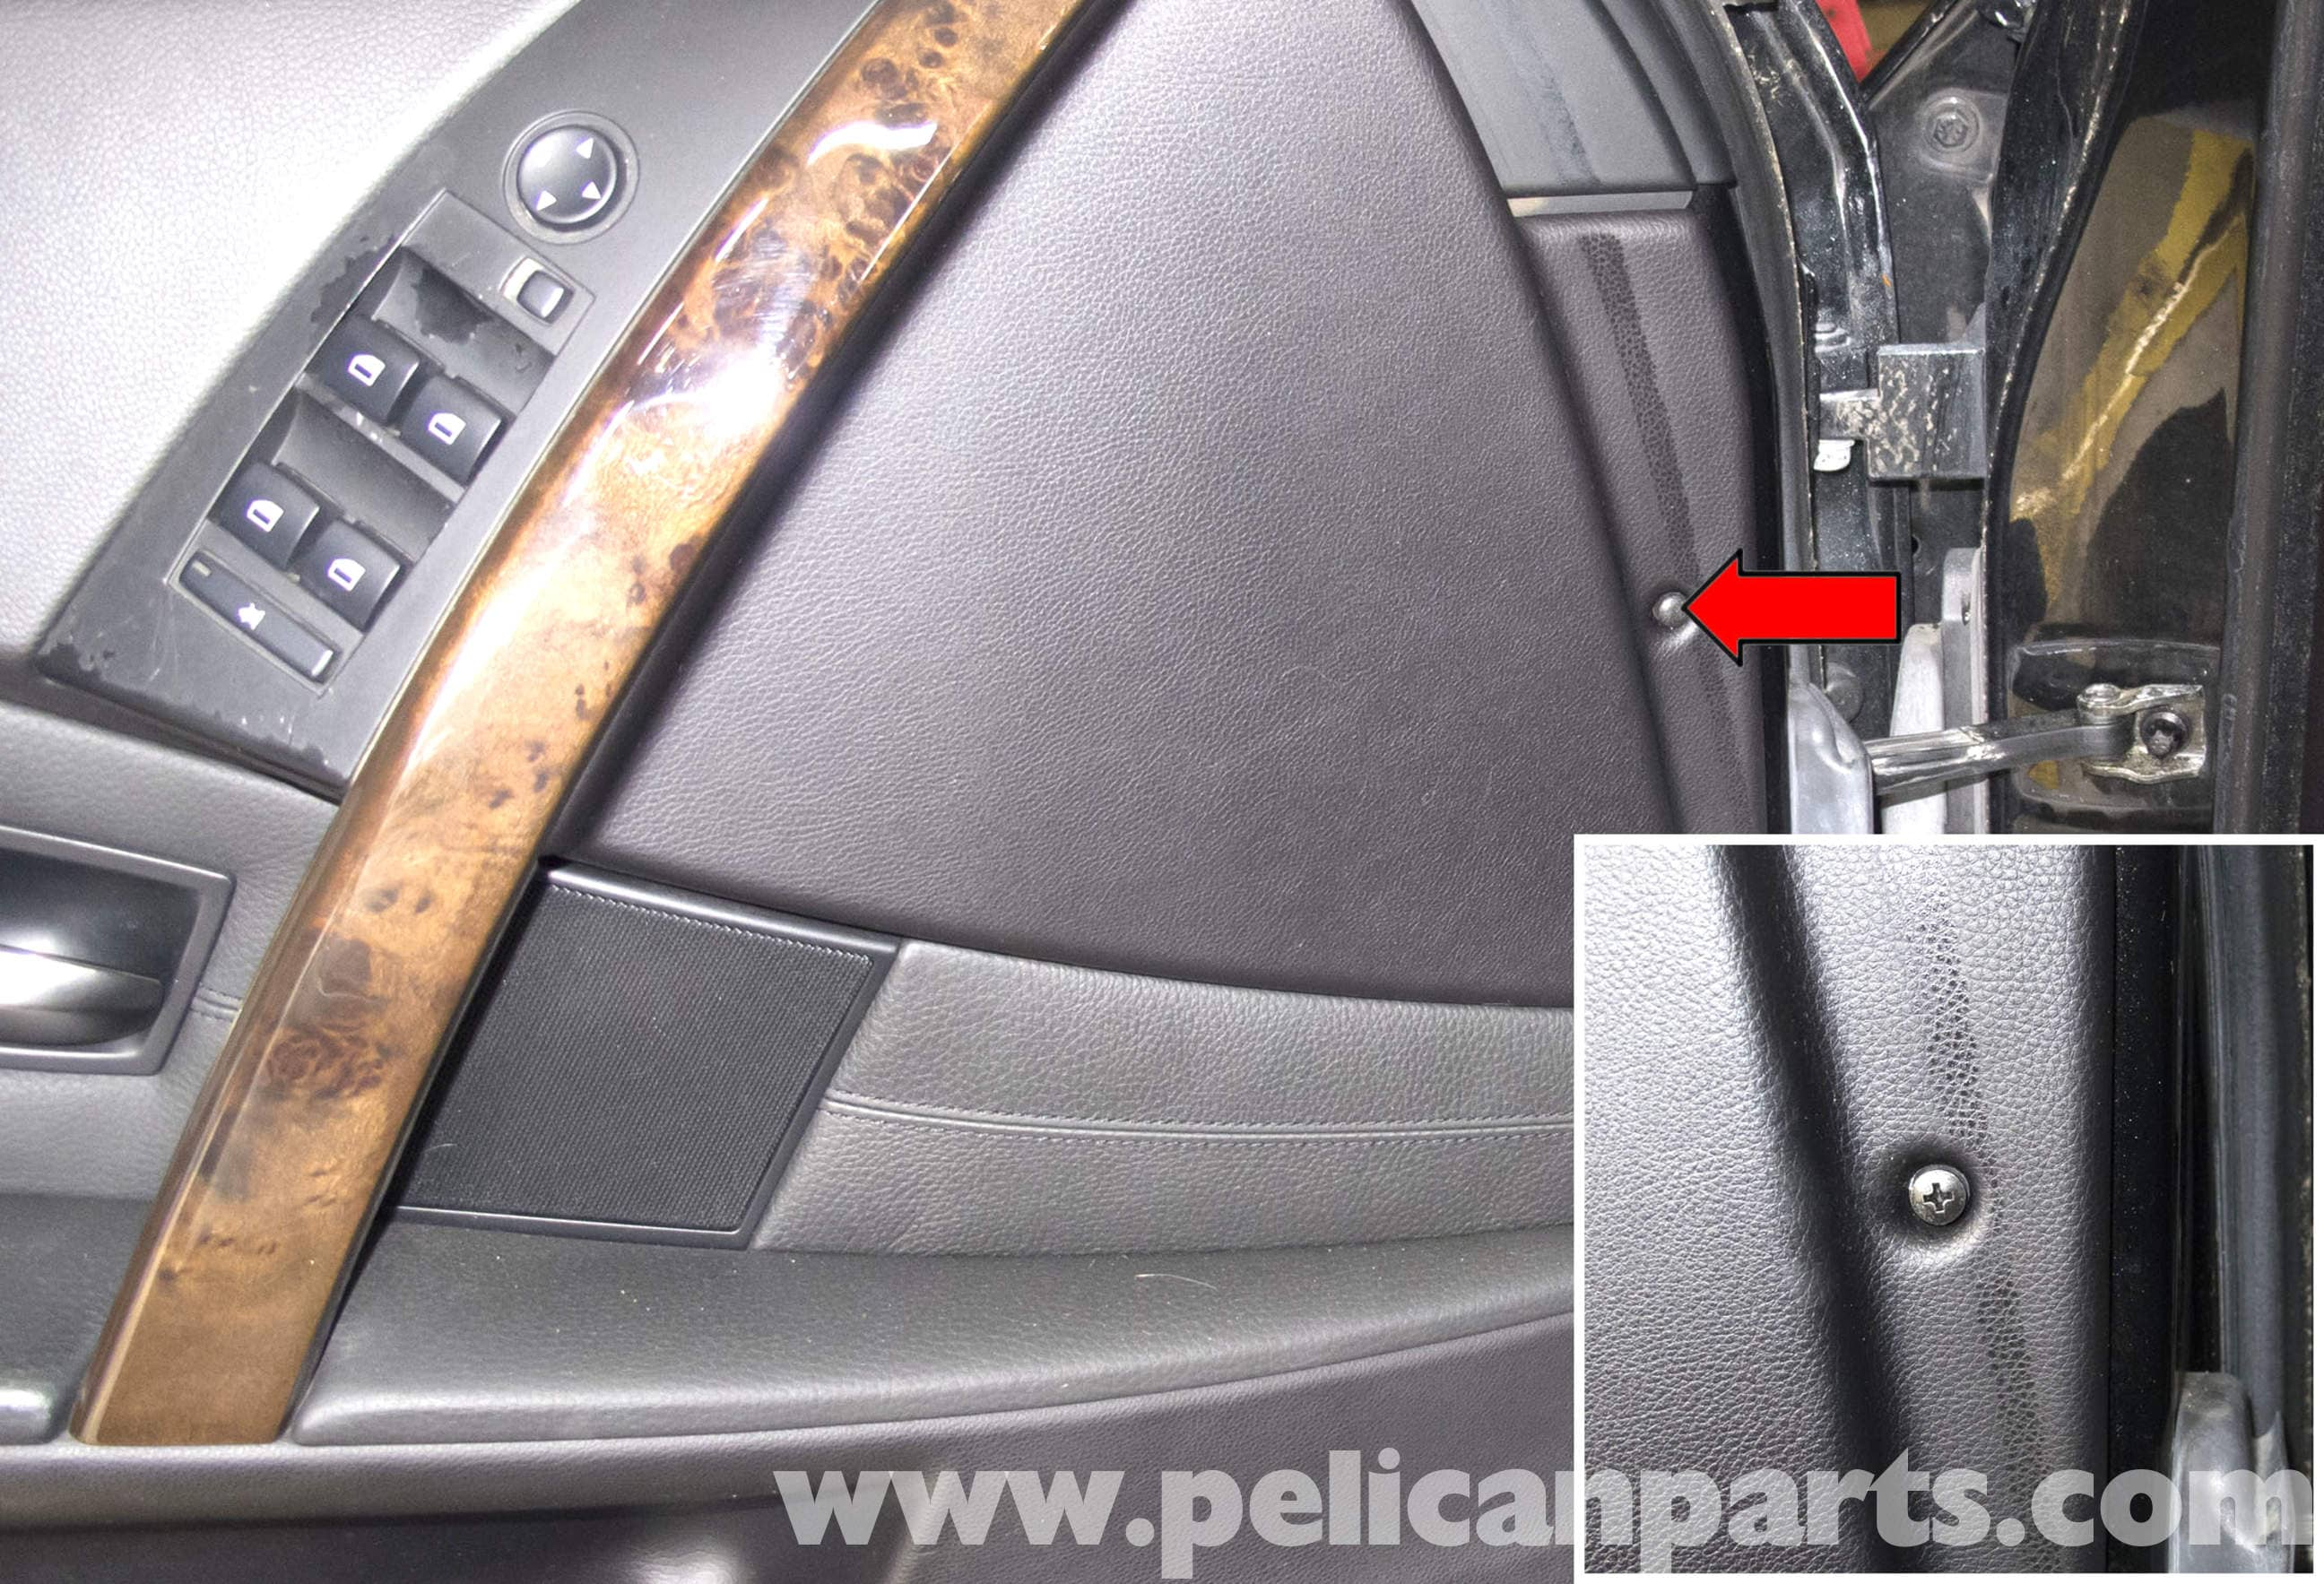 Large Image | Extra-Large Image & BMW E60 5-Series Front Door Panel Replacement (2003-2010) - Pelican ...